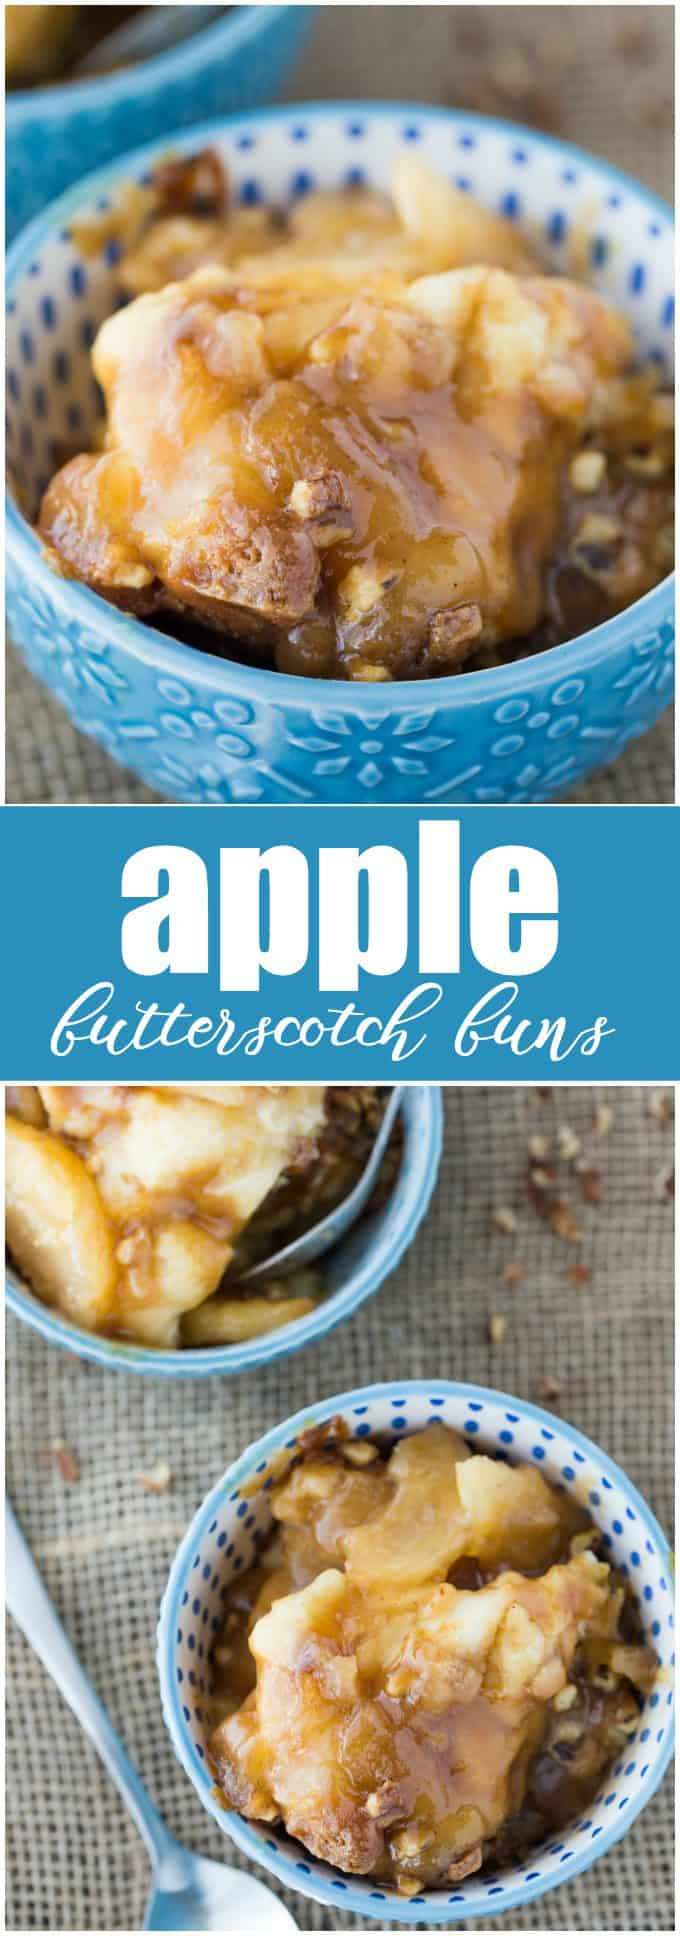 Apple Butterscotch Buns - Soft, tender buns topped with sweet apples, rich butterscotch sauce and chopped walnuts. This easy dessert will quickly become a favourite!